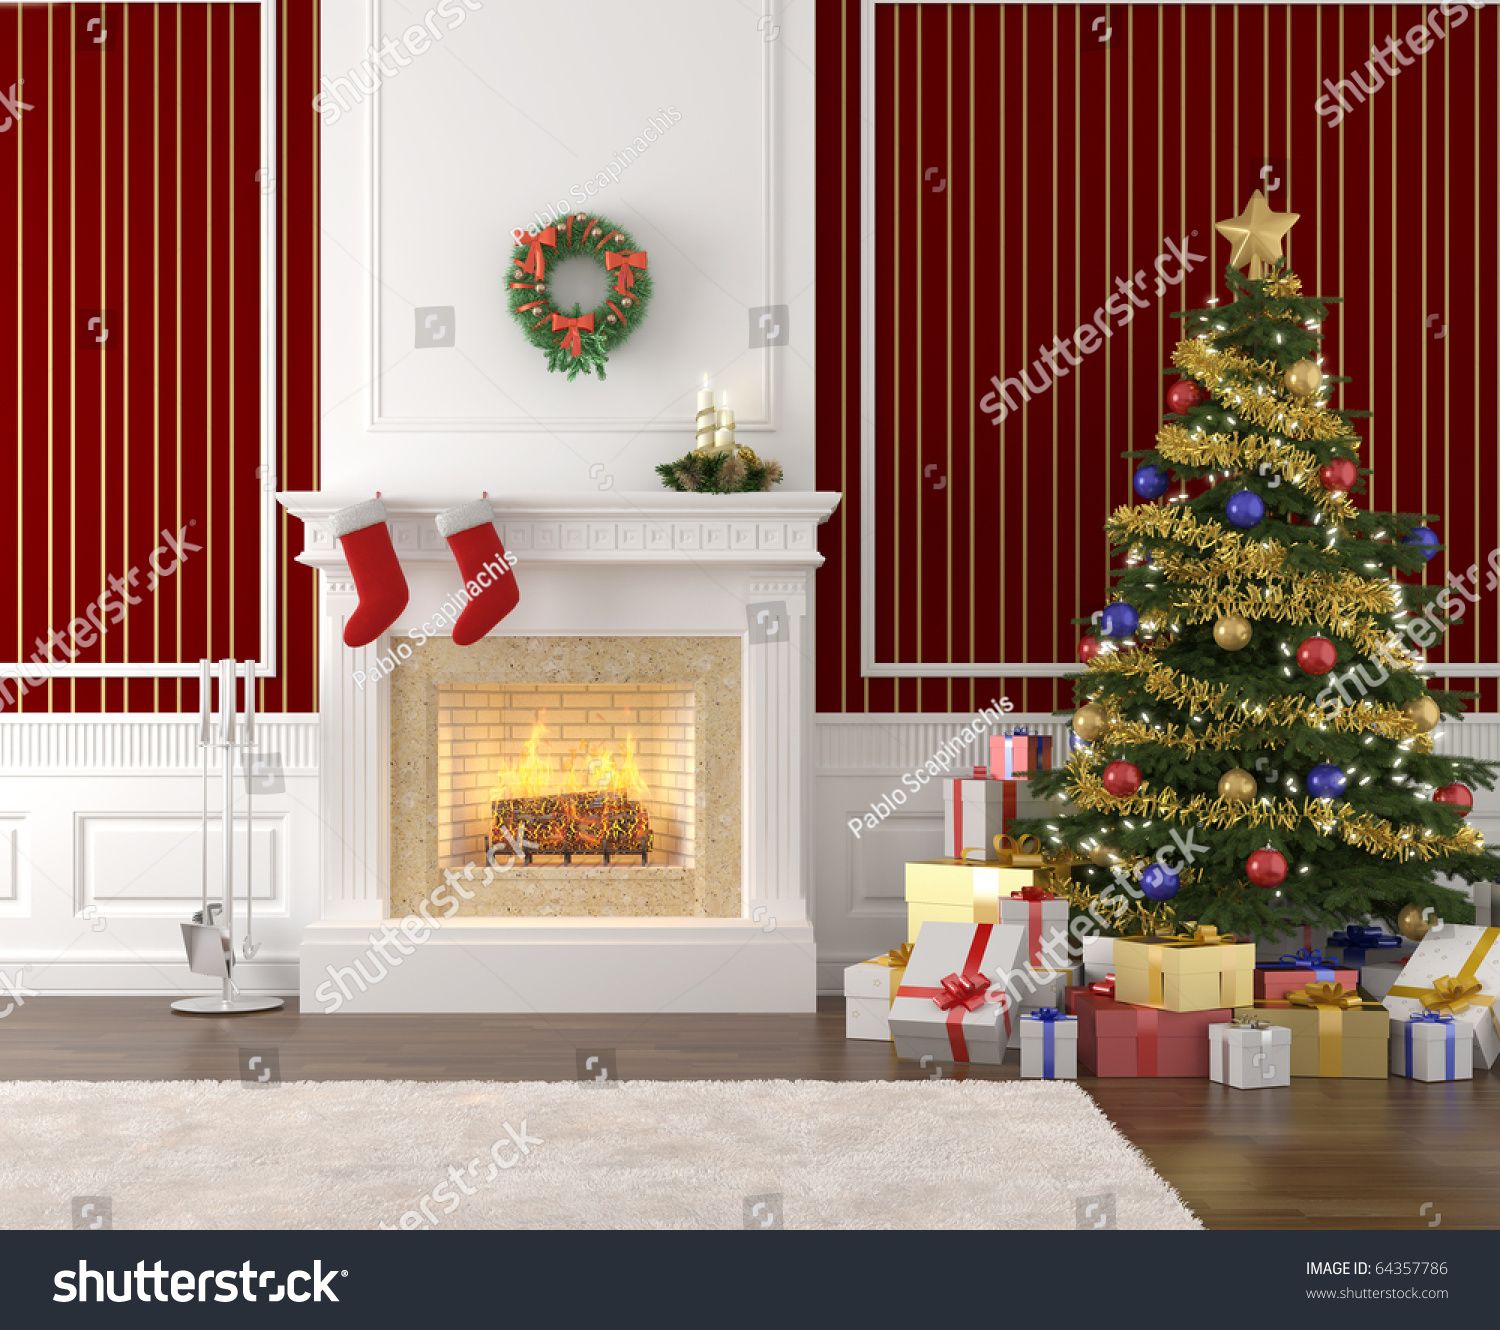 Traditional And Stylish Interior With Fireplace, Christmas